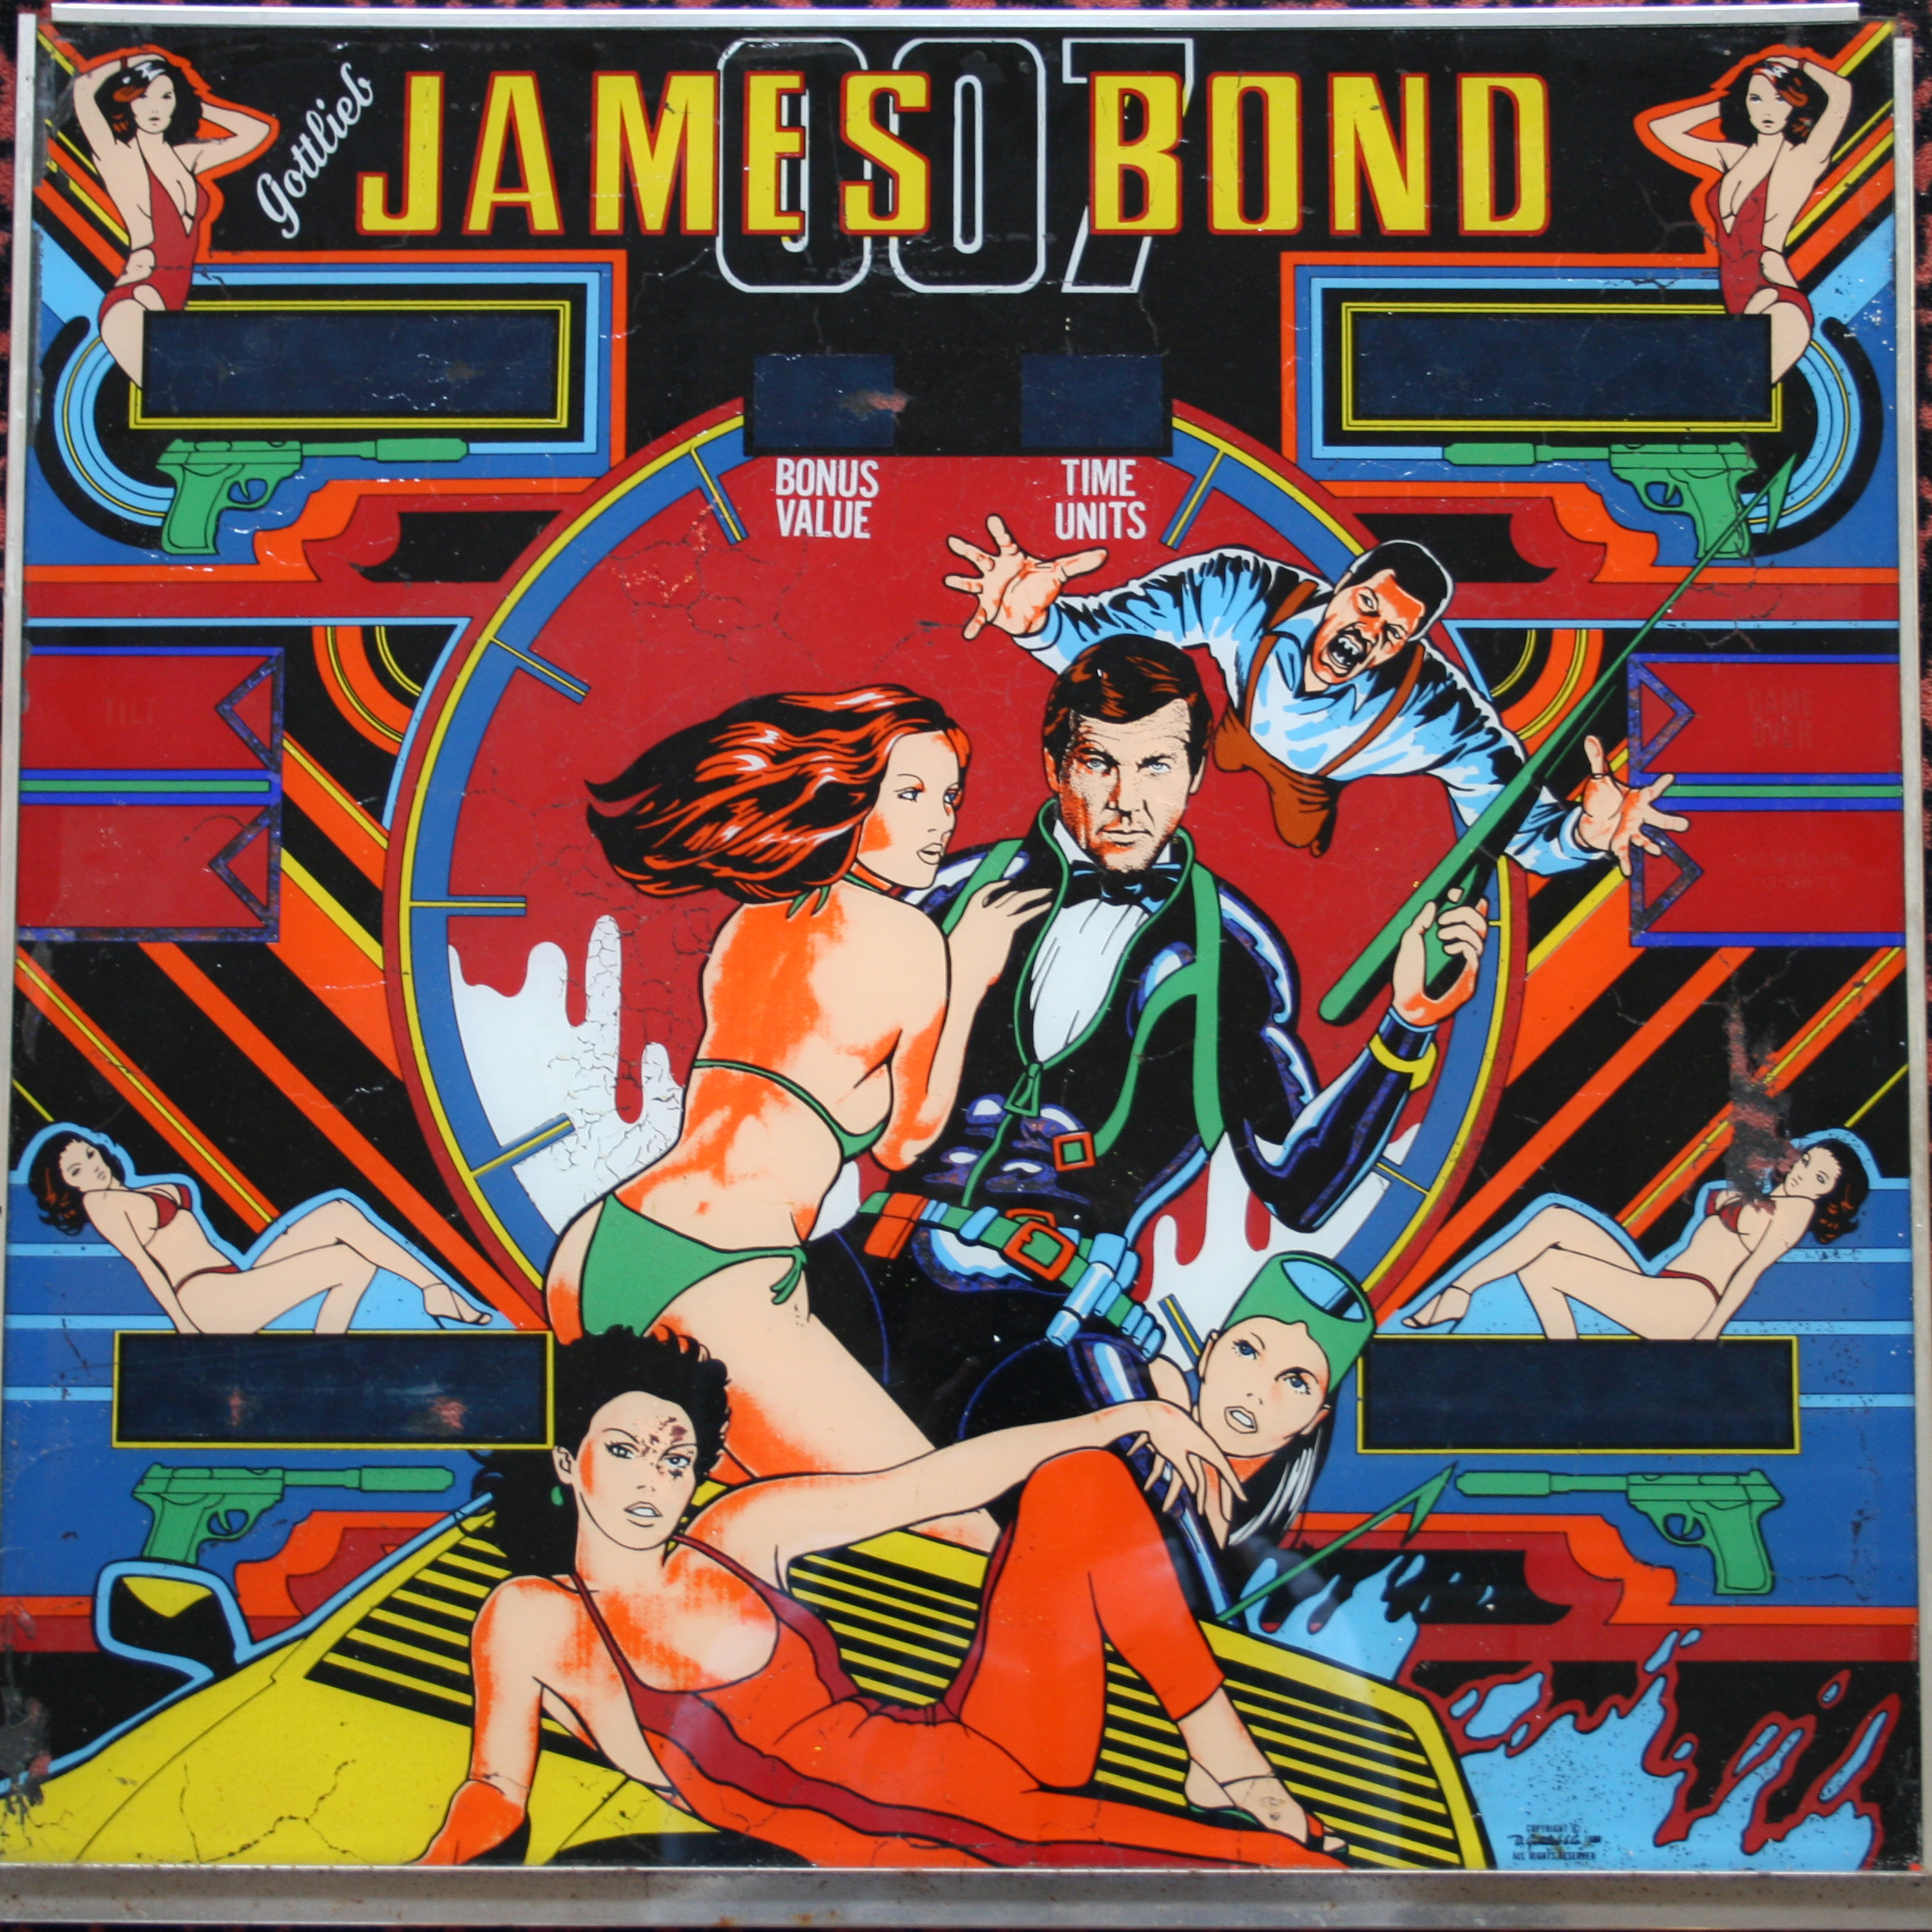 JAMES BOND * PINBALL MACHINE GLASS 1980